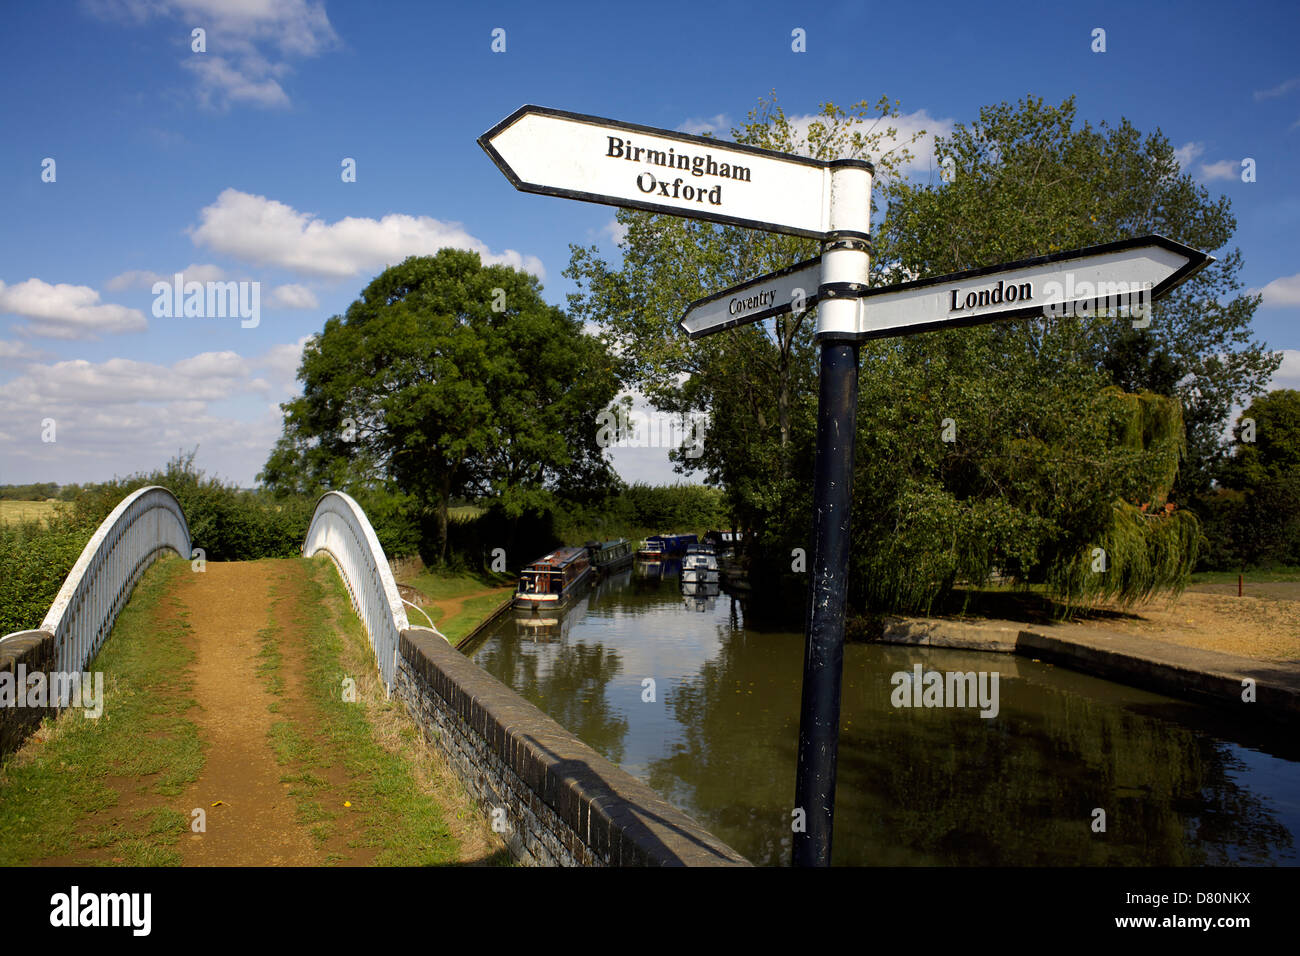 Canal signpost at the junction between the Oxford Canal and the Grand Union Canal Boats on the Oxford Canal Braunston - Stock Image